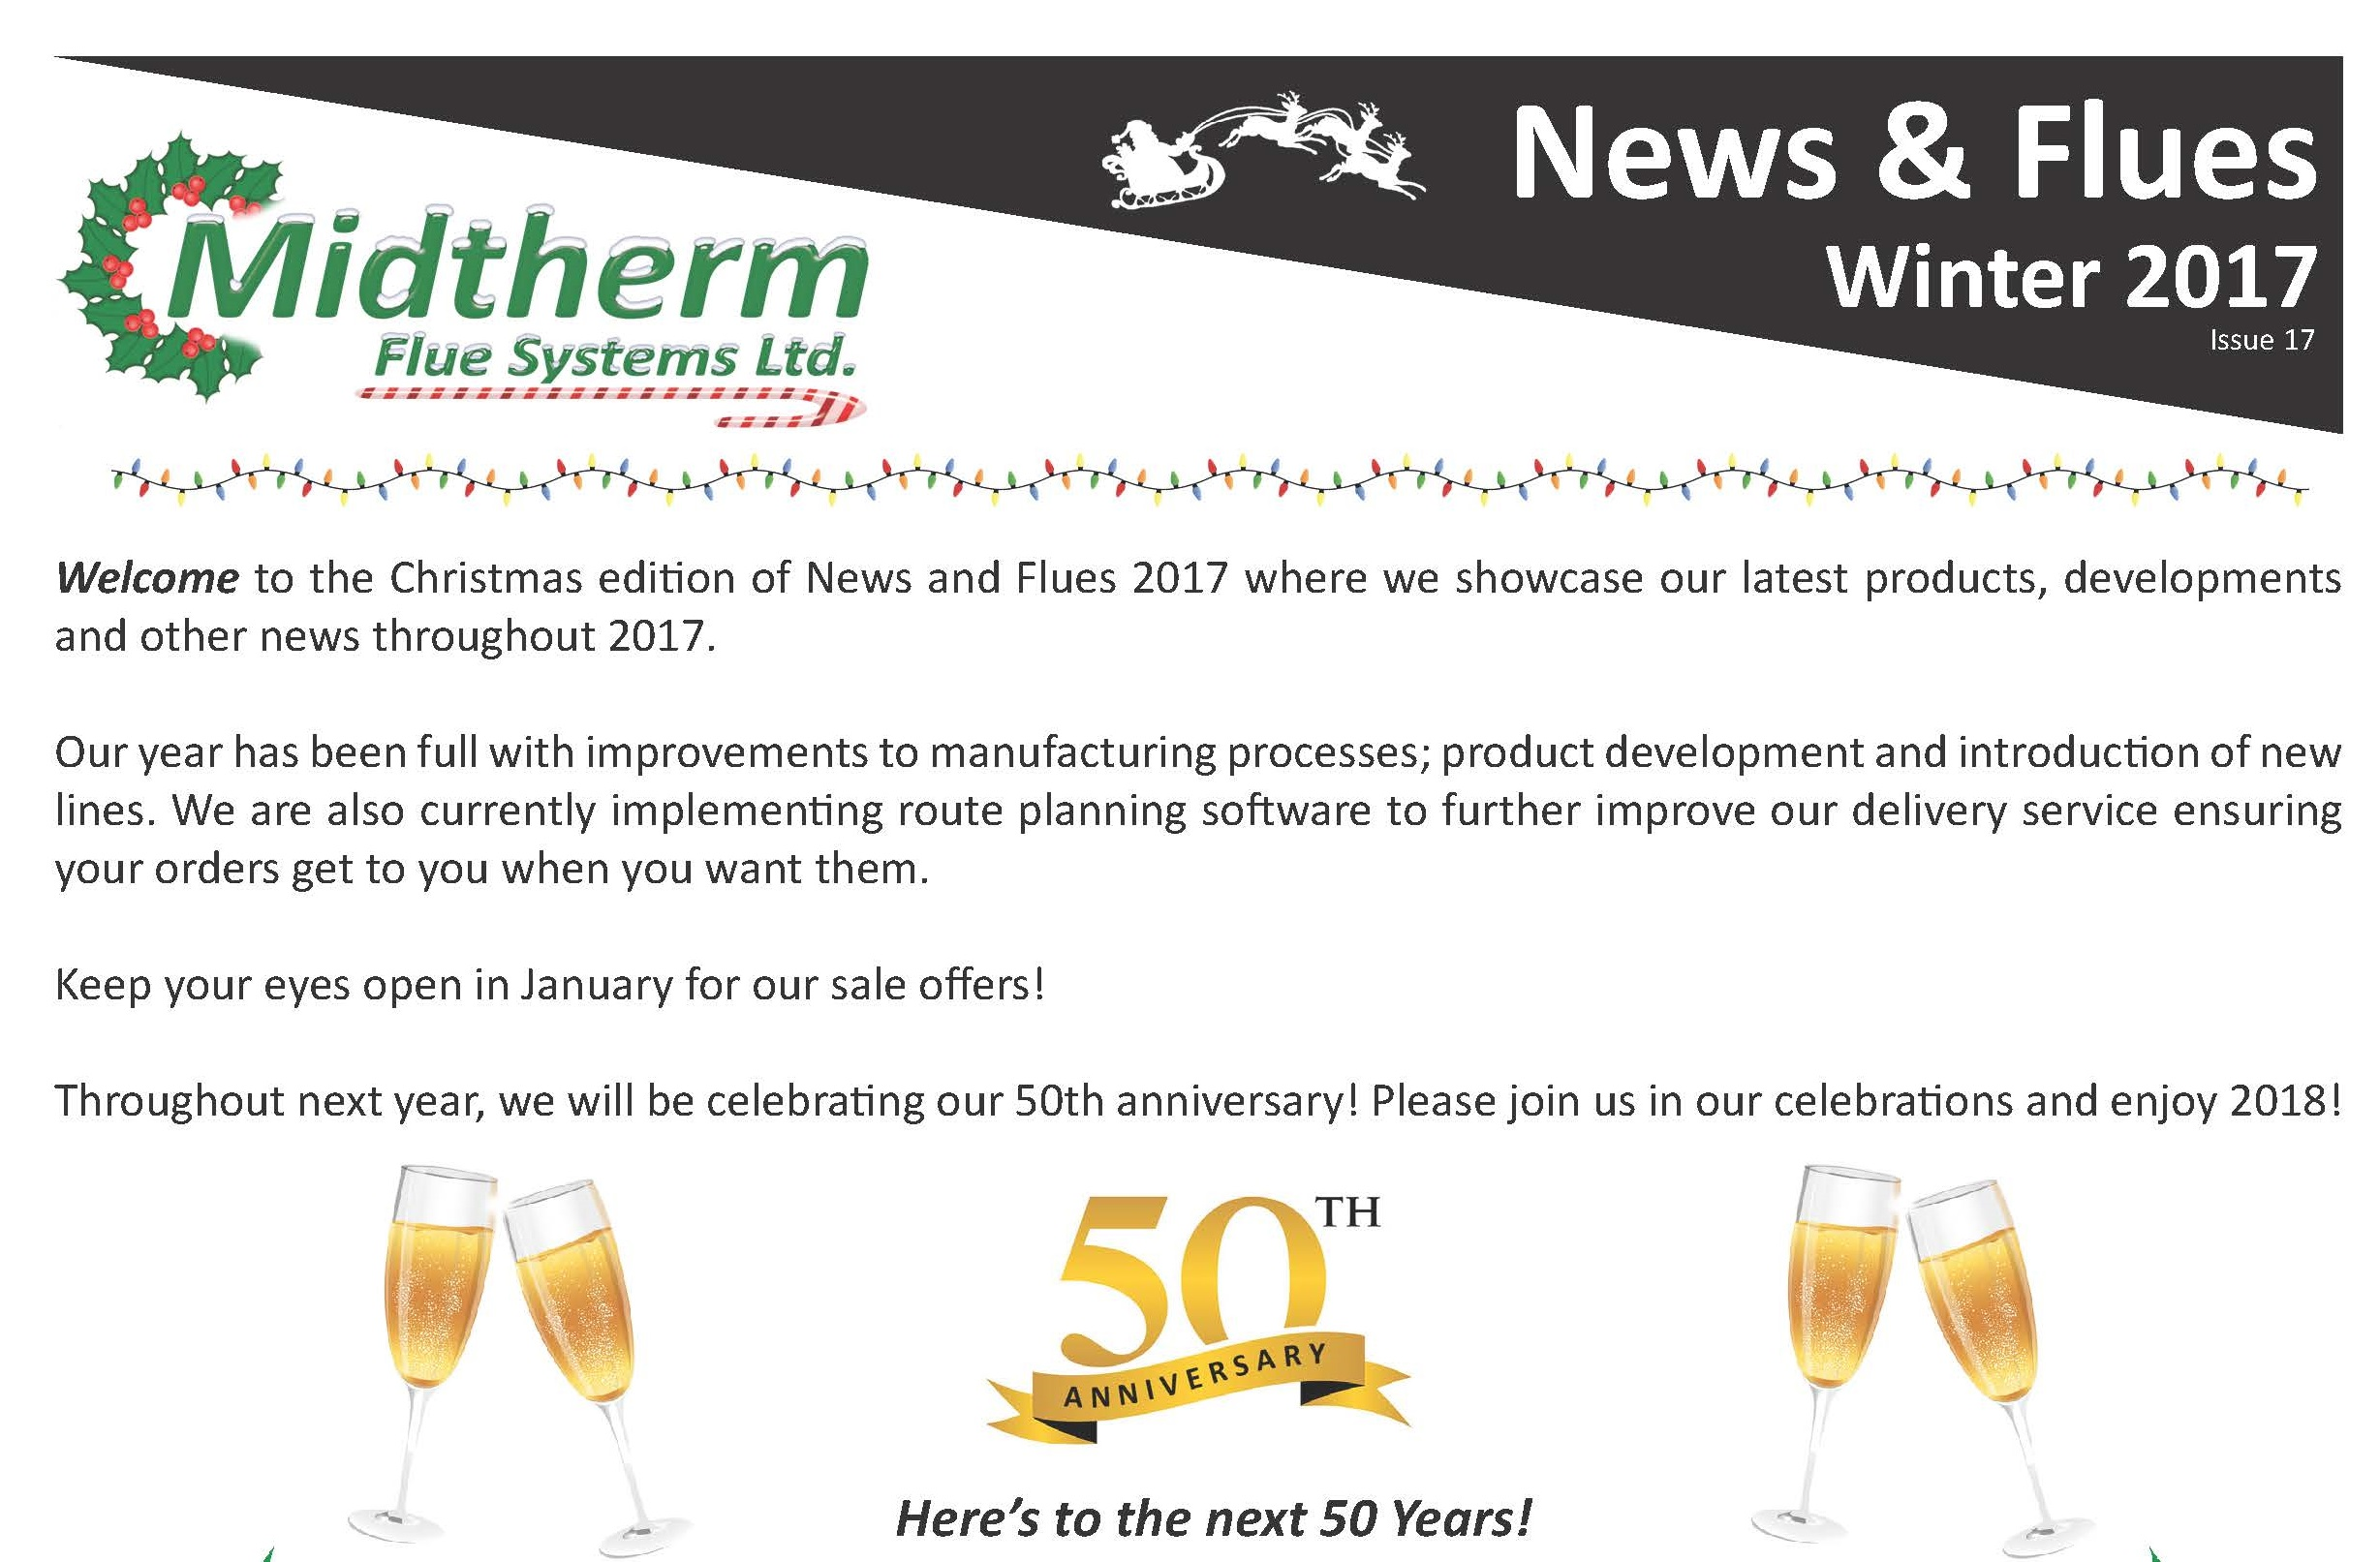 Midtherm Flue Systems Newsletter Christmas 2017